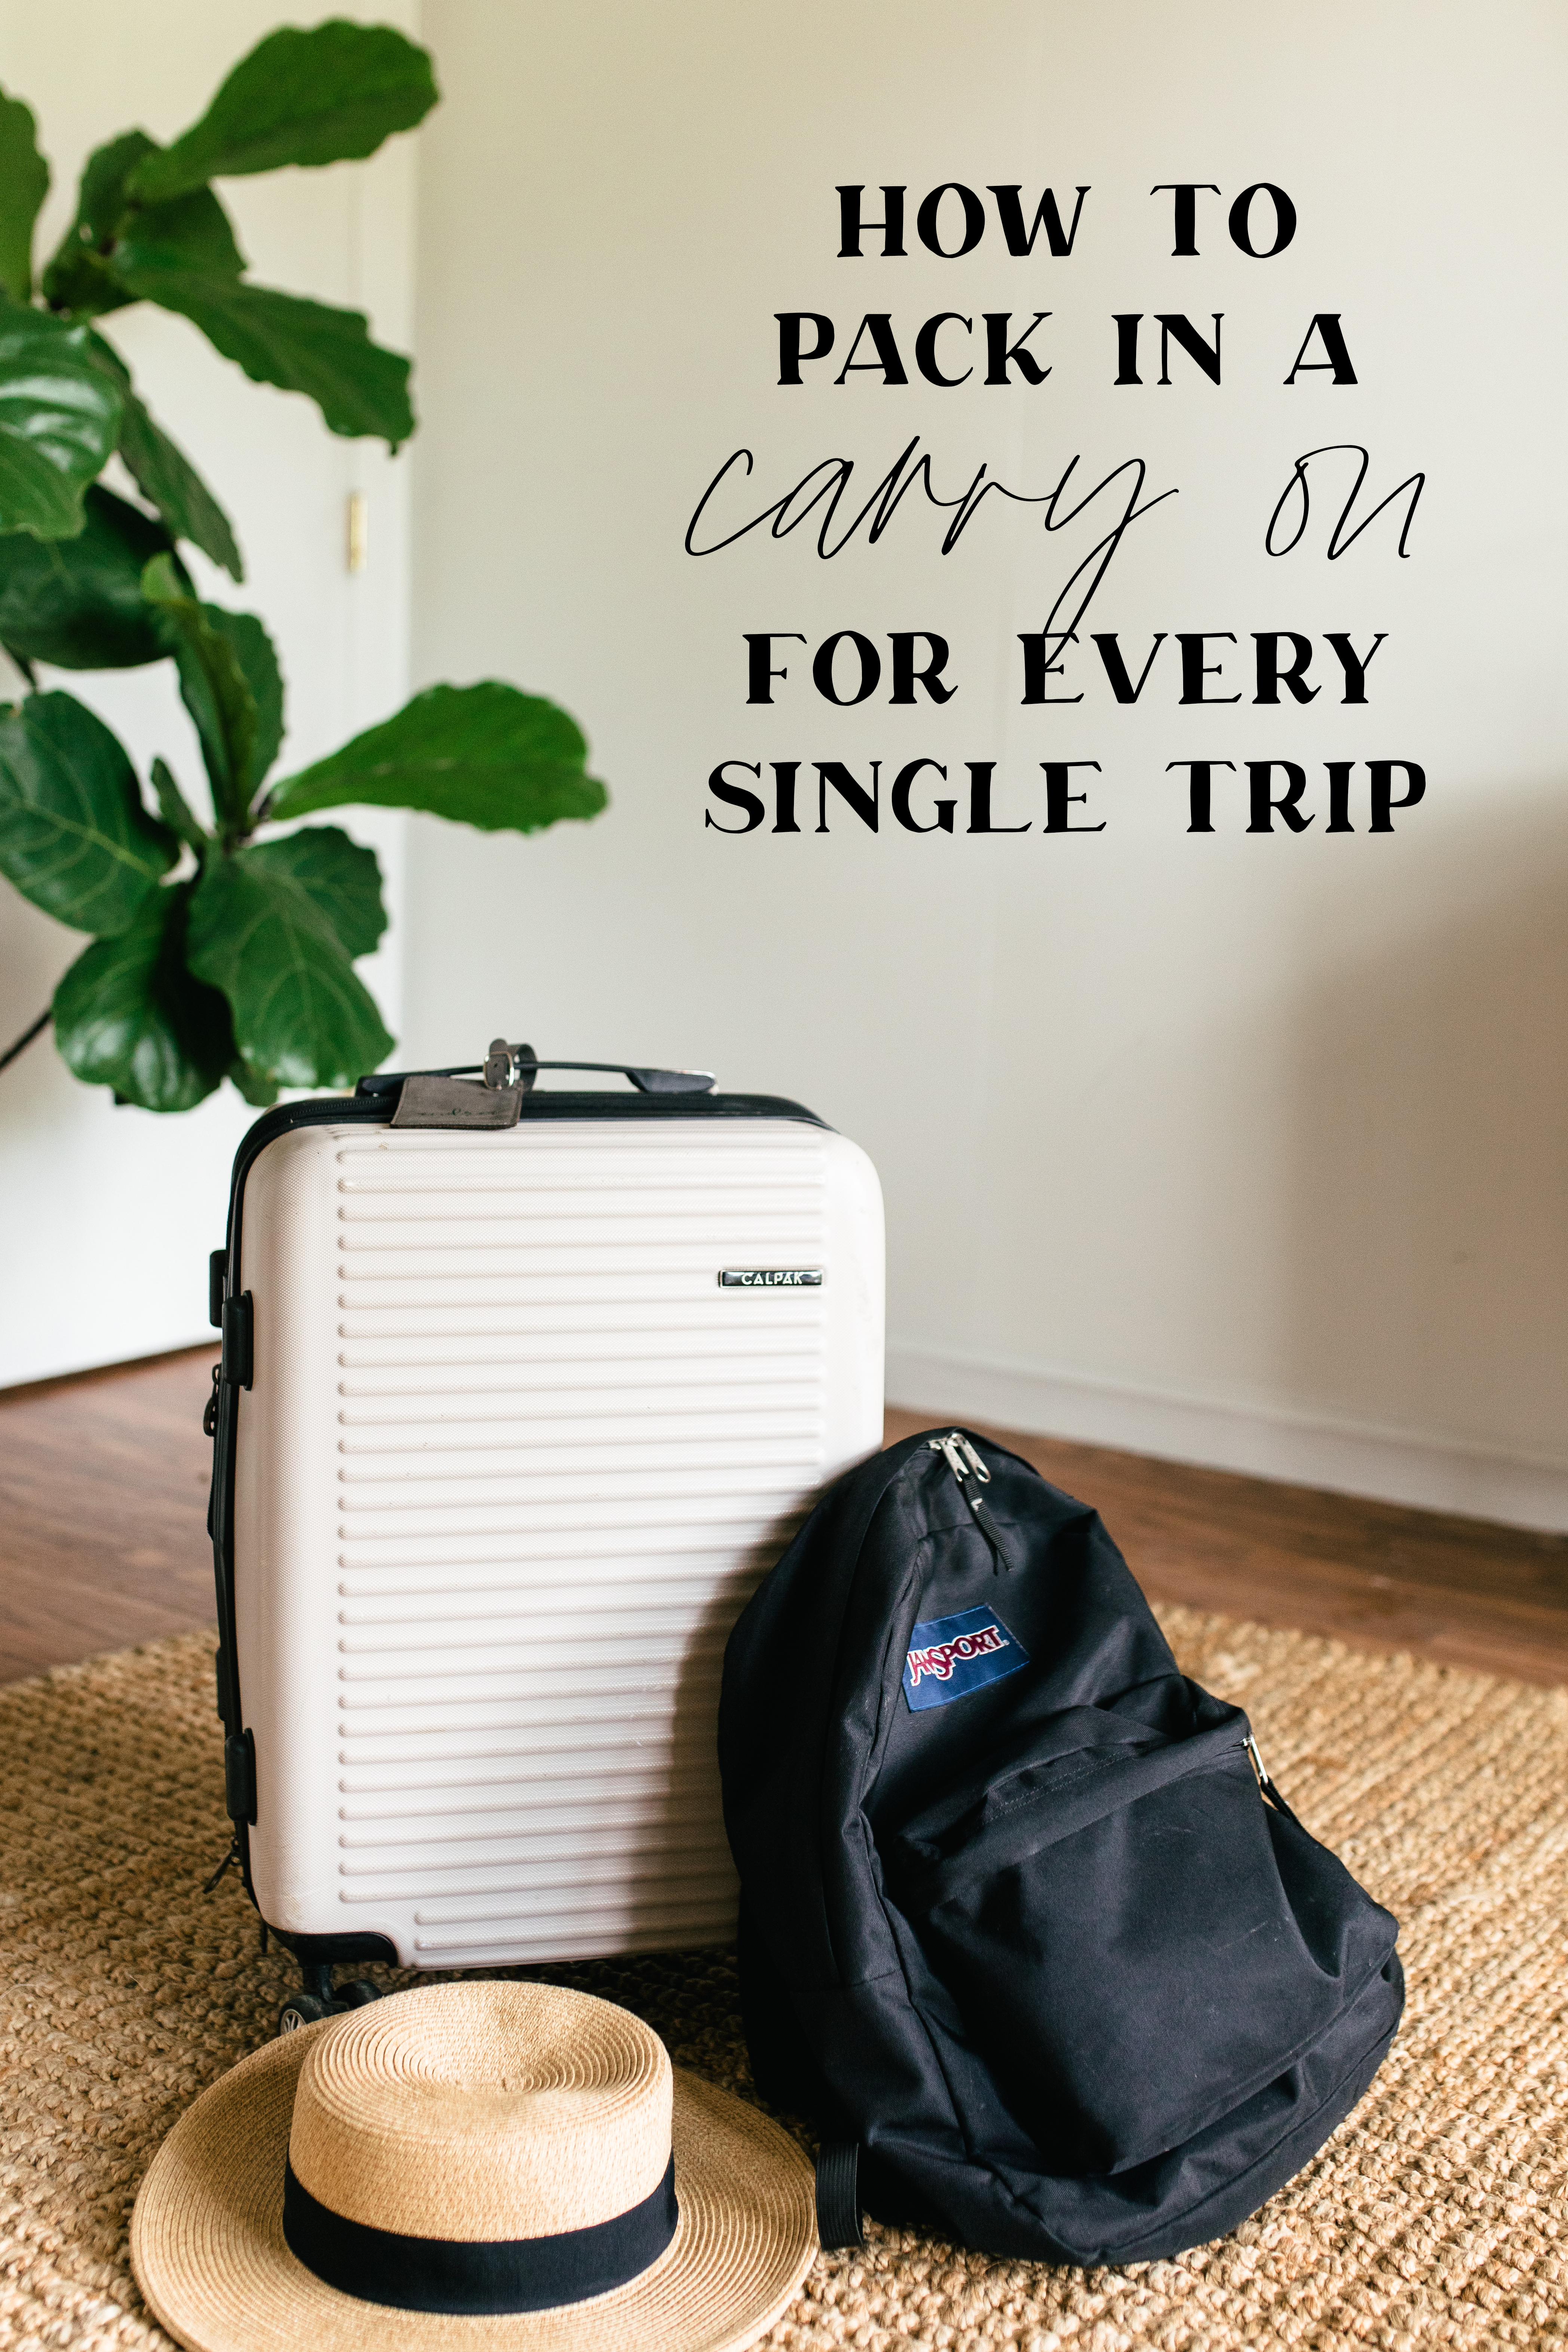 suitcase and backpack in room with text overlay